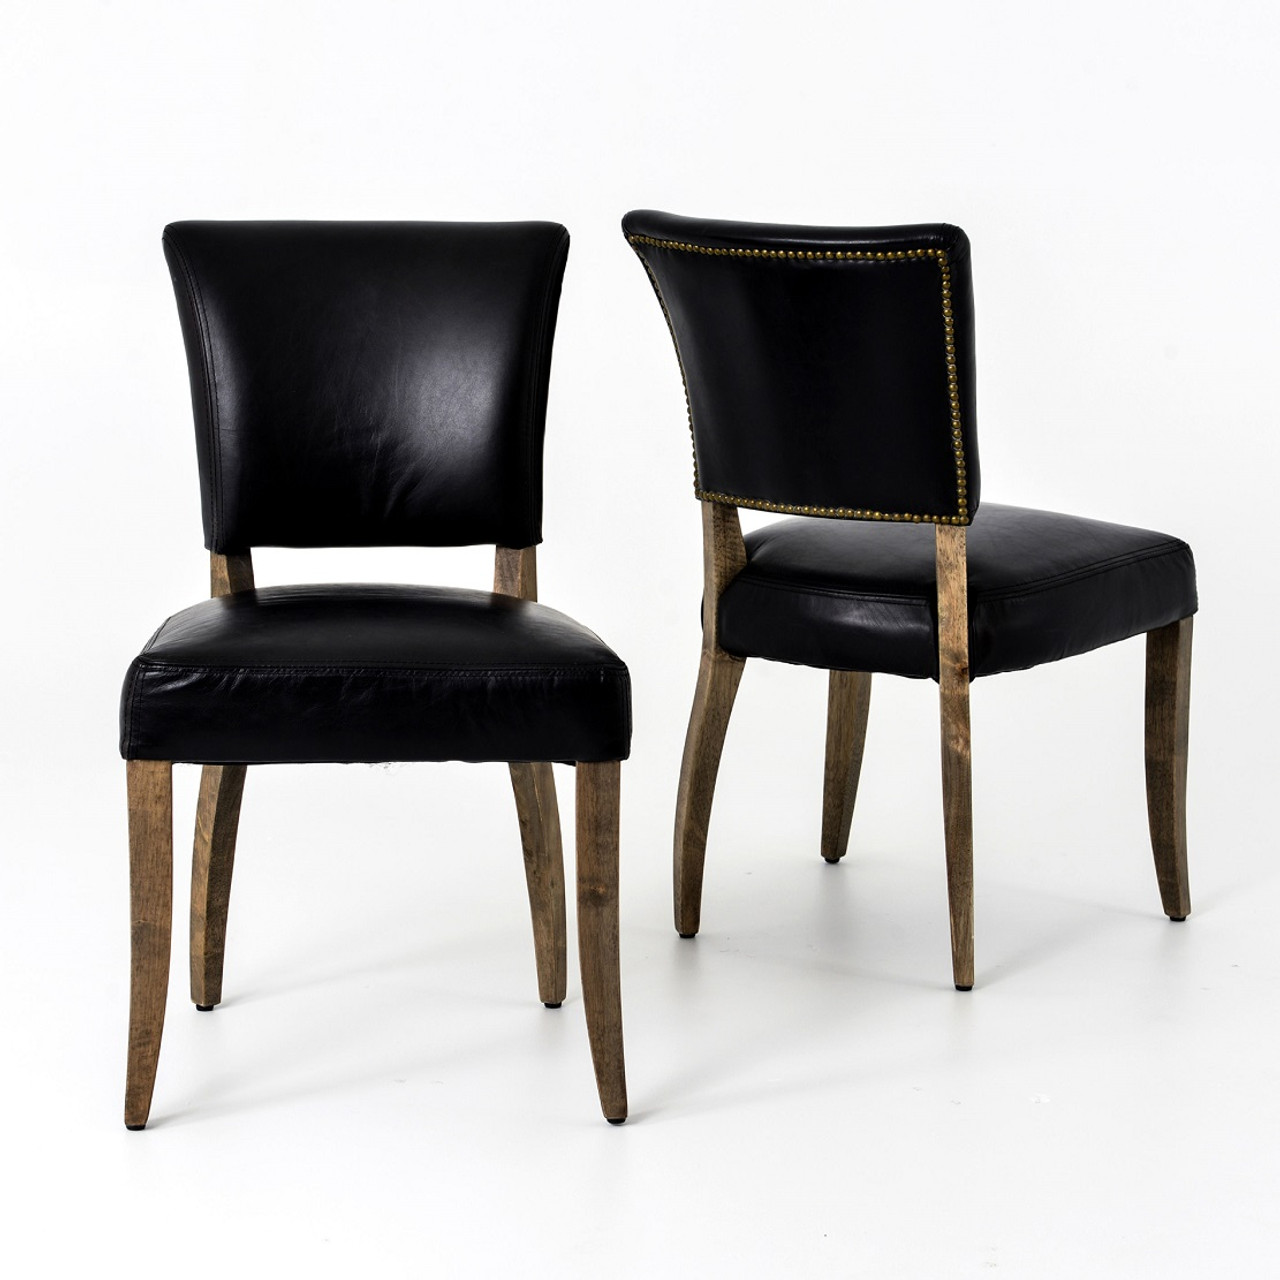 black leather dining chairs Mimi Saddle Black Leather Dining Chair | Zin Home black leather dining chairs